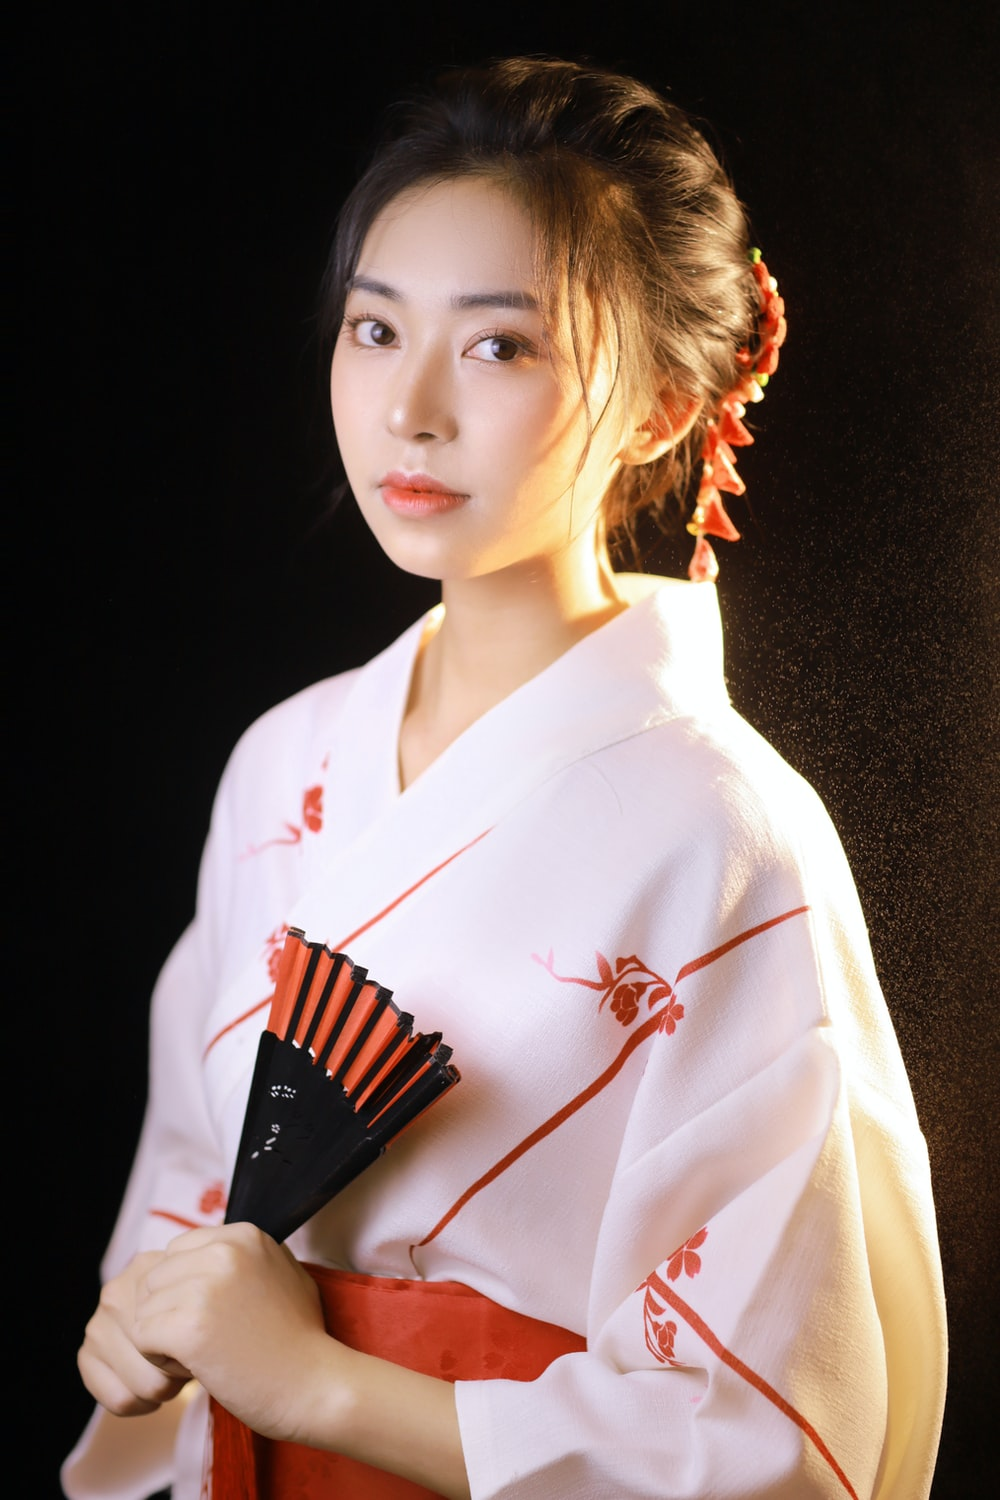 woman in white robe holding hair comb